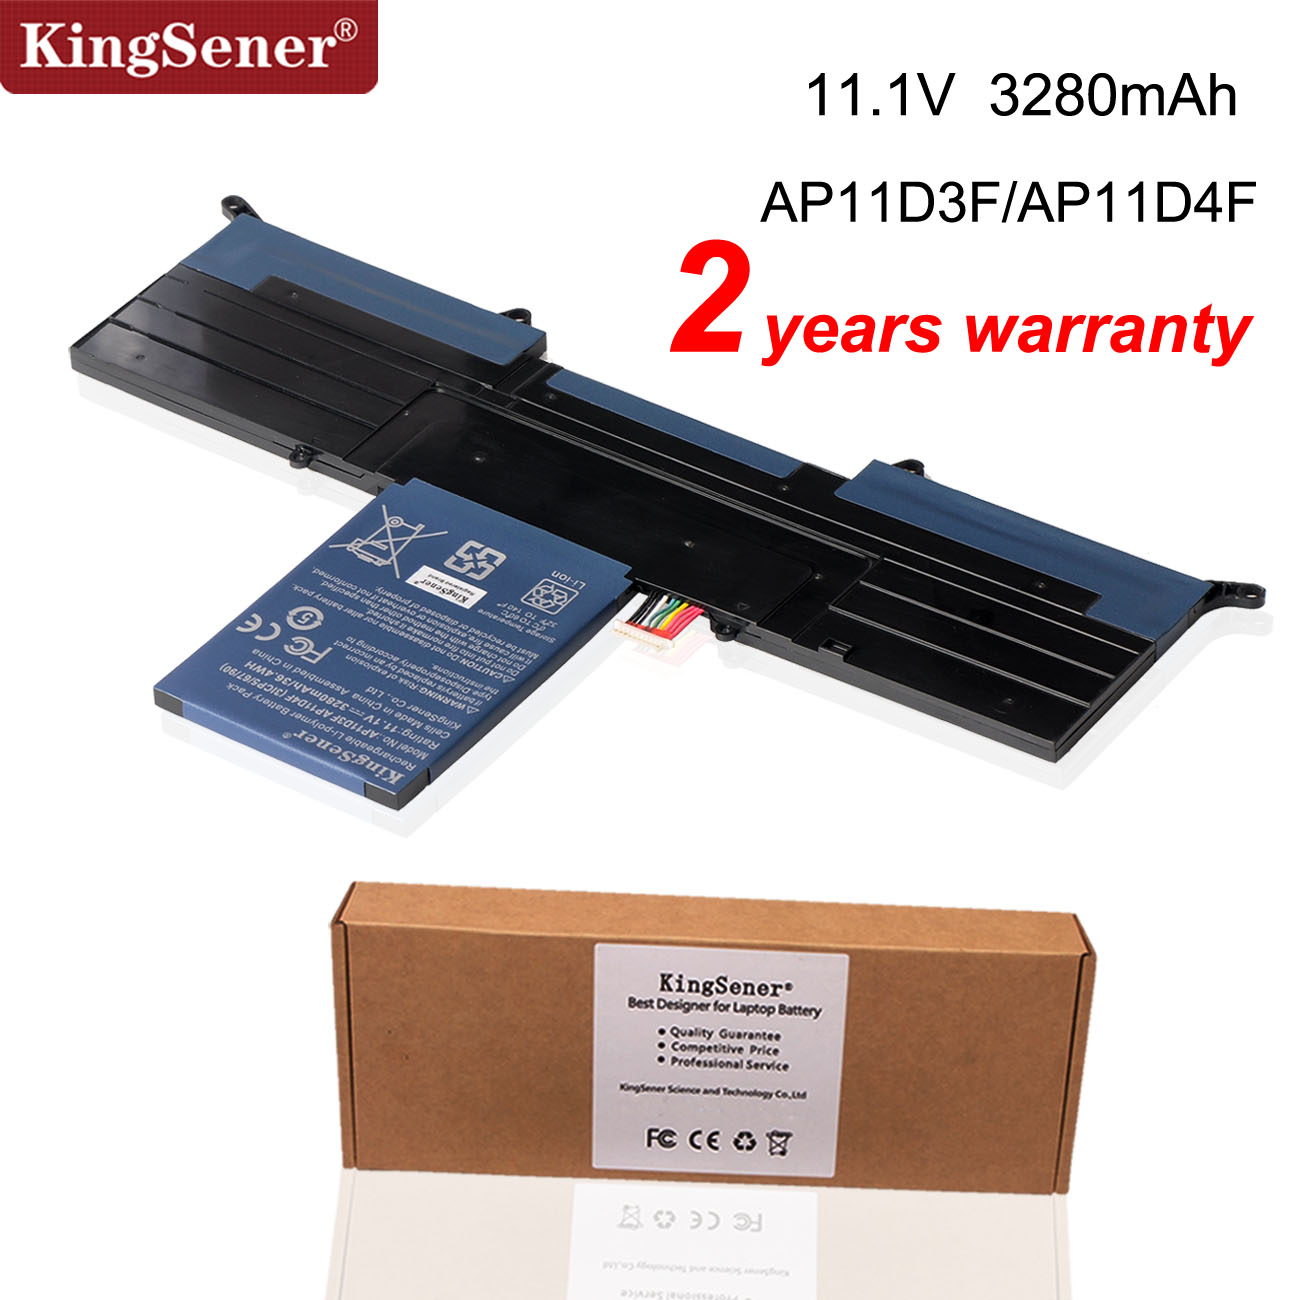 KingSener New <font><b>AP11D3F</b></font> Battery For Acer Aspire S3 S3-951 S3-391 MS2346 <font><b>AP11D3F</b></font> AP11D4F 3ICP5/65/88 3ICP5/67/90 11.1V 3280mAh image